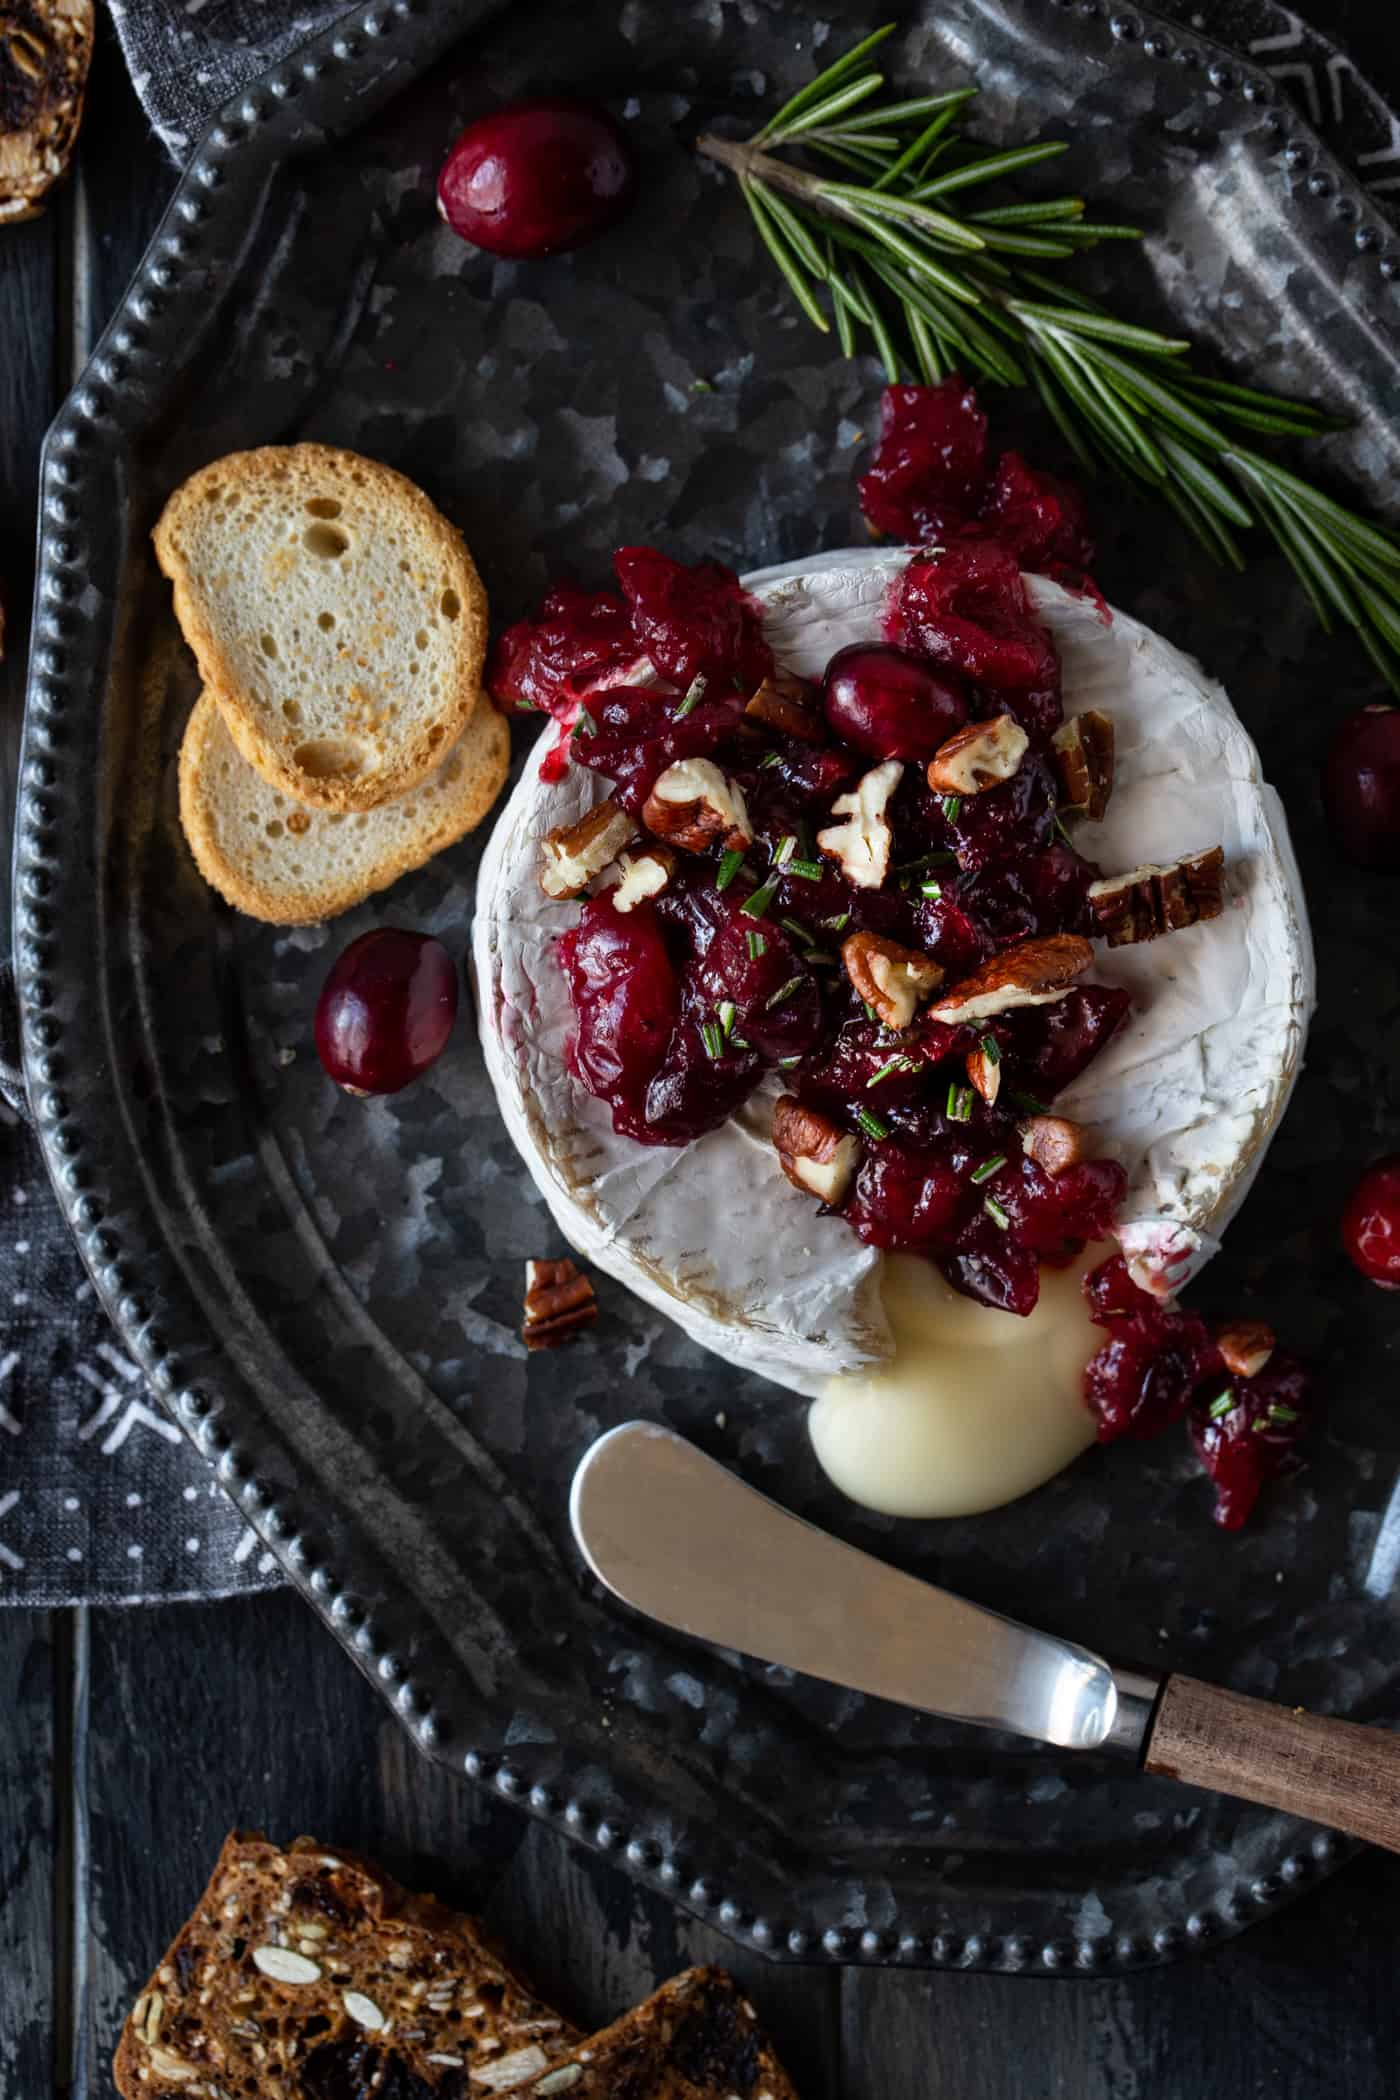 A wheel of warm brie with Cranberries and Pecans on a silver tray with a spreader and mini toasts.